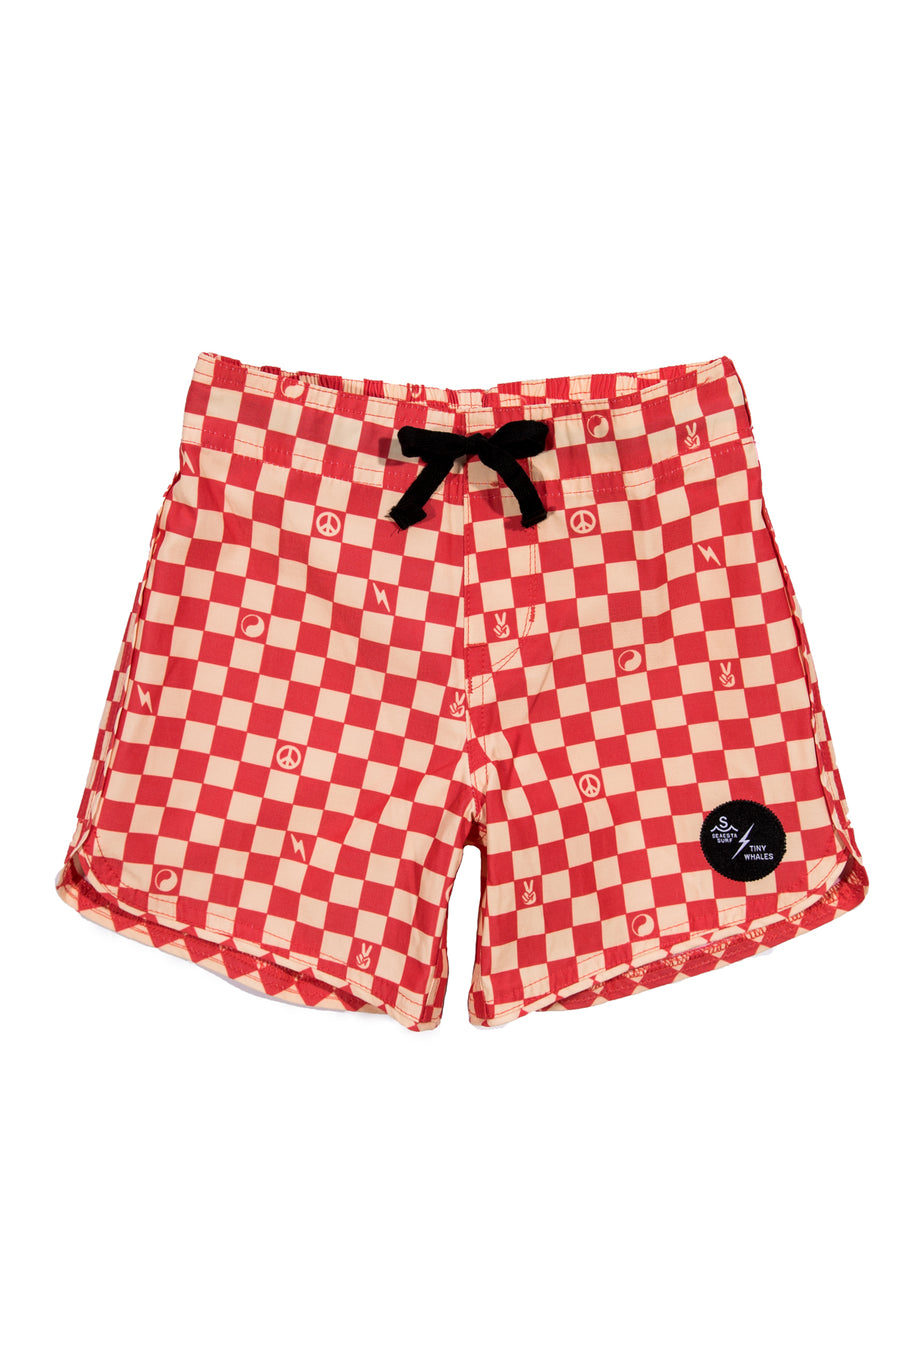 Seaesta Surf x Tiny Whales / Check 1.2 Boardshorts